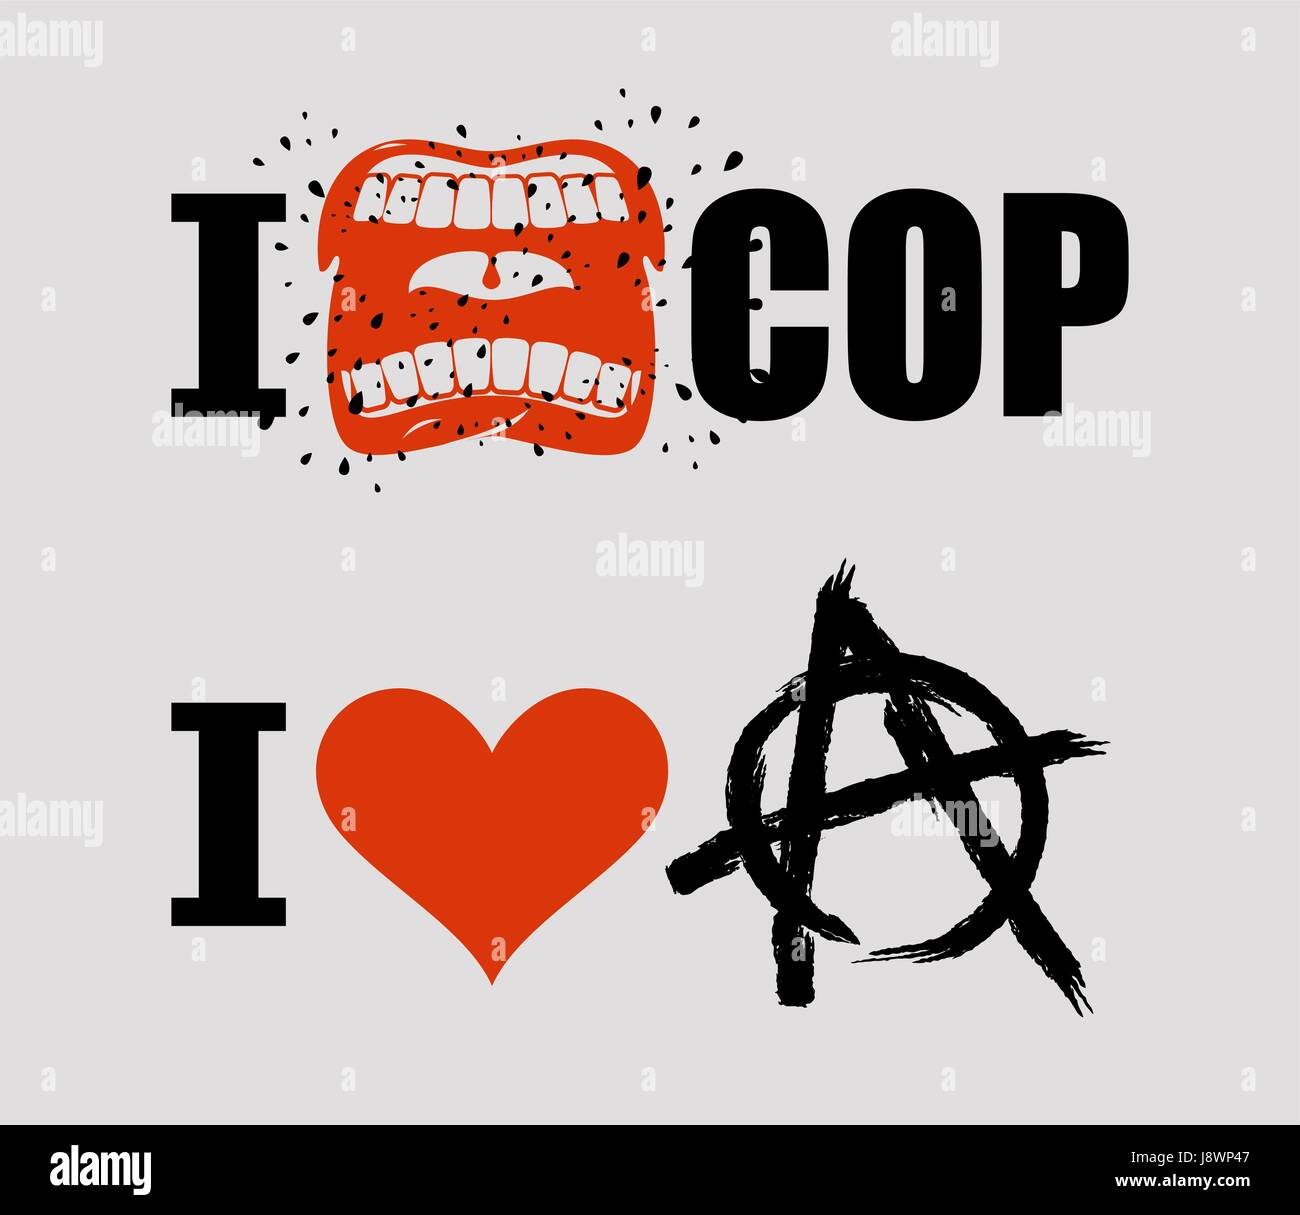 I Hate Cop I Love Anarchy Loud Cry Of Sign Of Aggression And